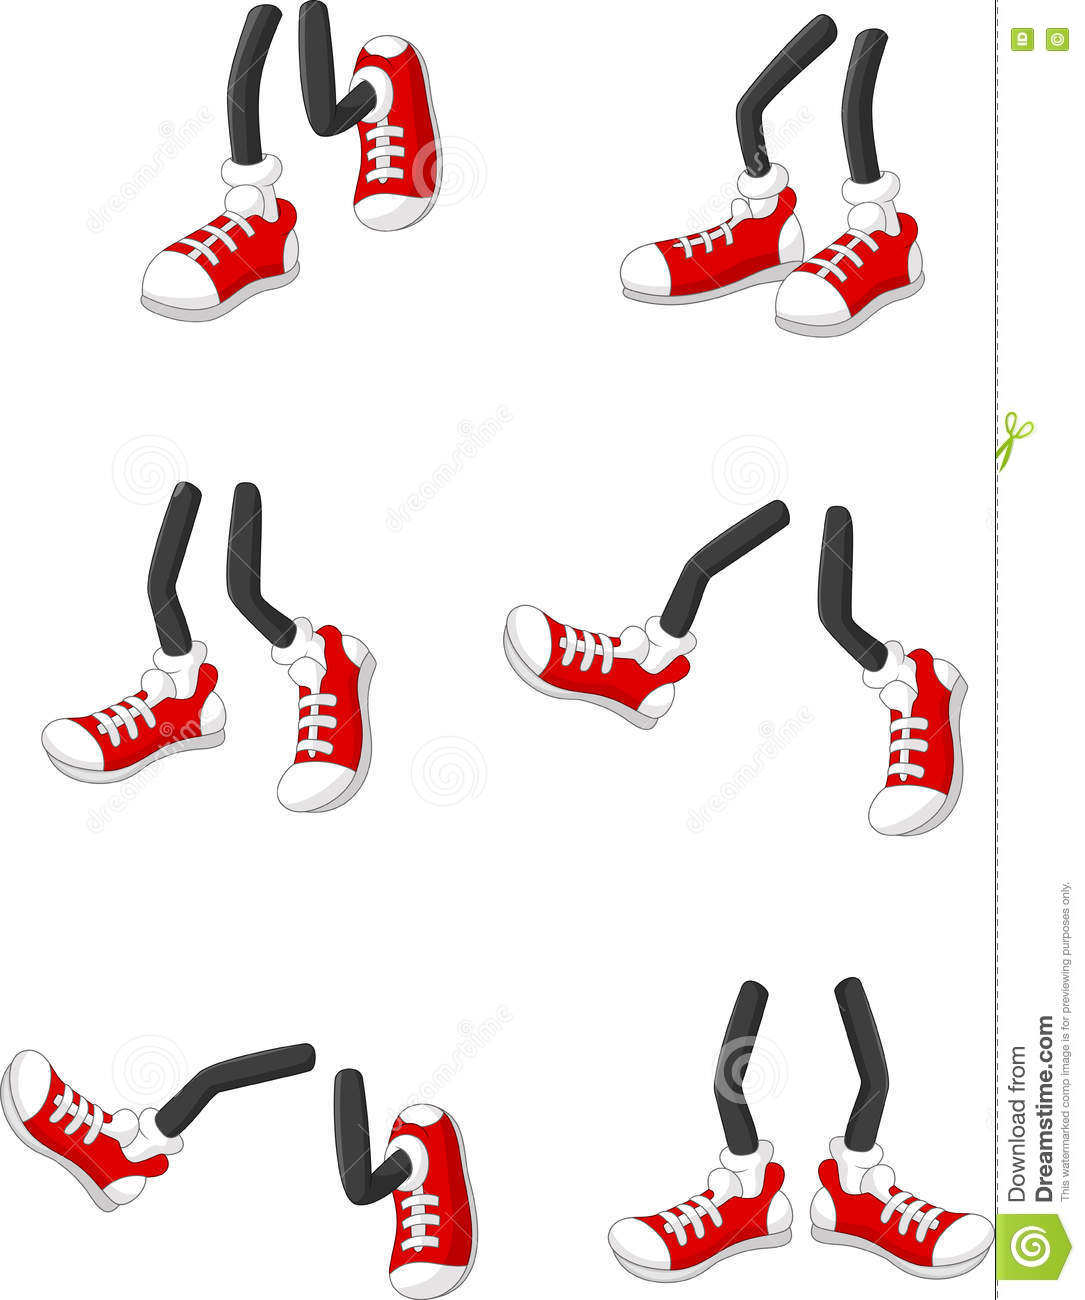 Sex Feet Positions Vector Illustration  Cartoondealercom -8512